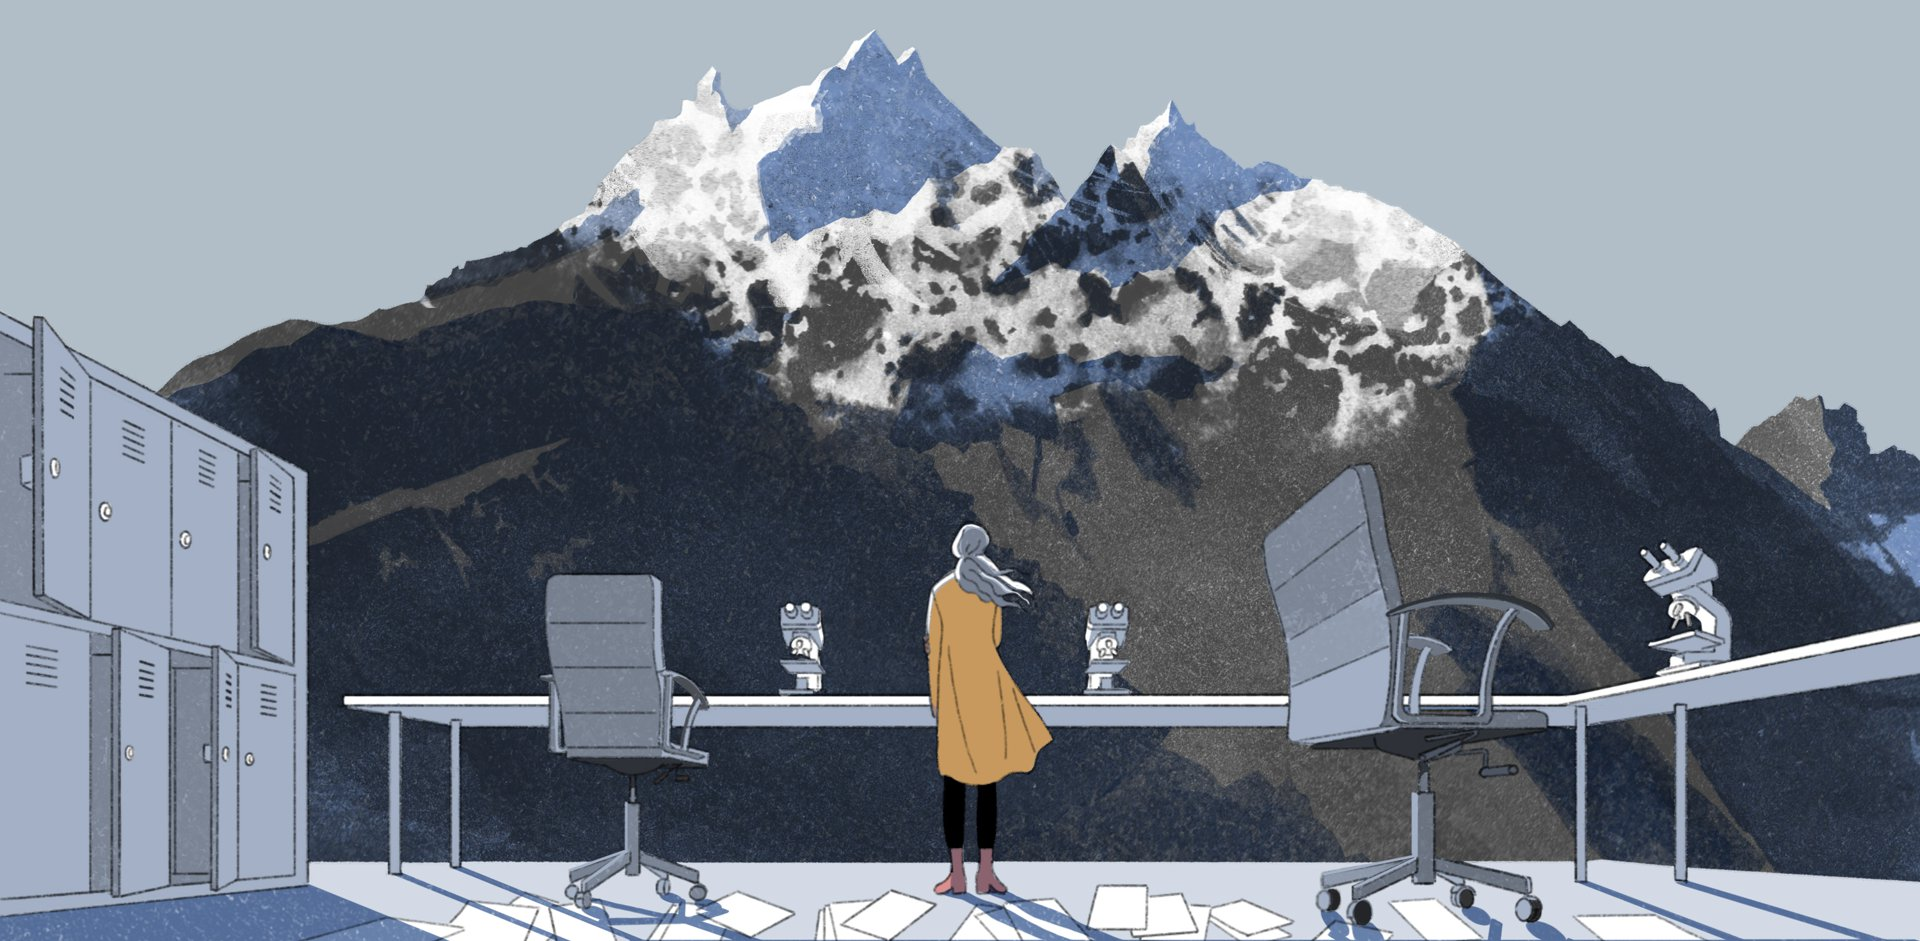 A woman stands in a laboratory with no walls and gazes at a glacier on a mountain.